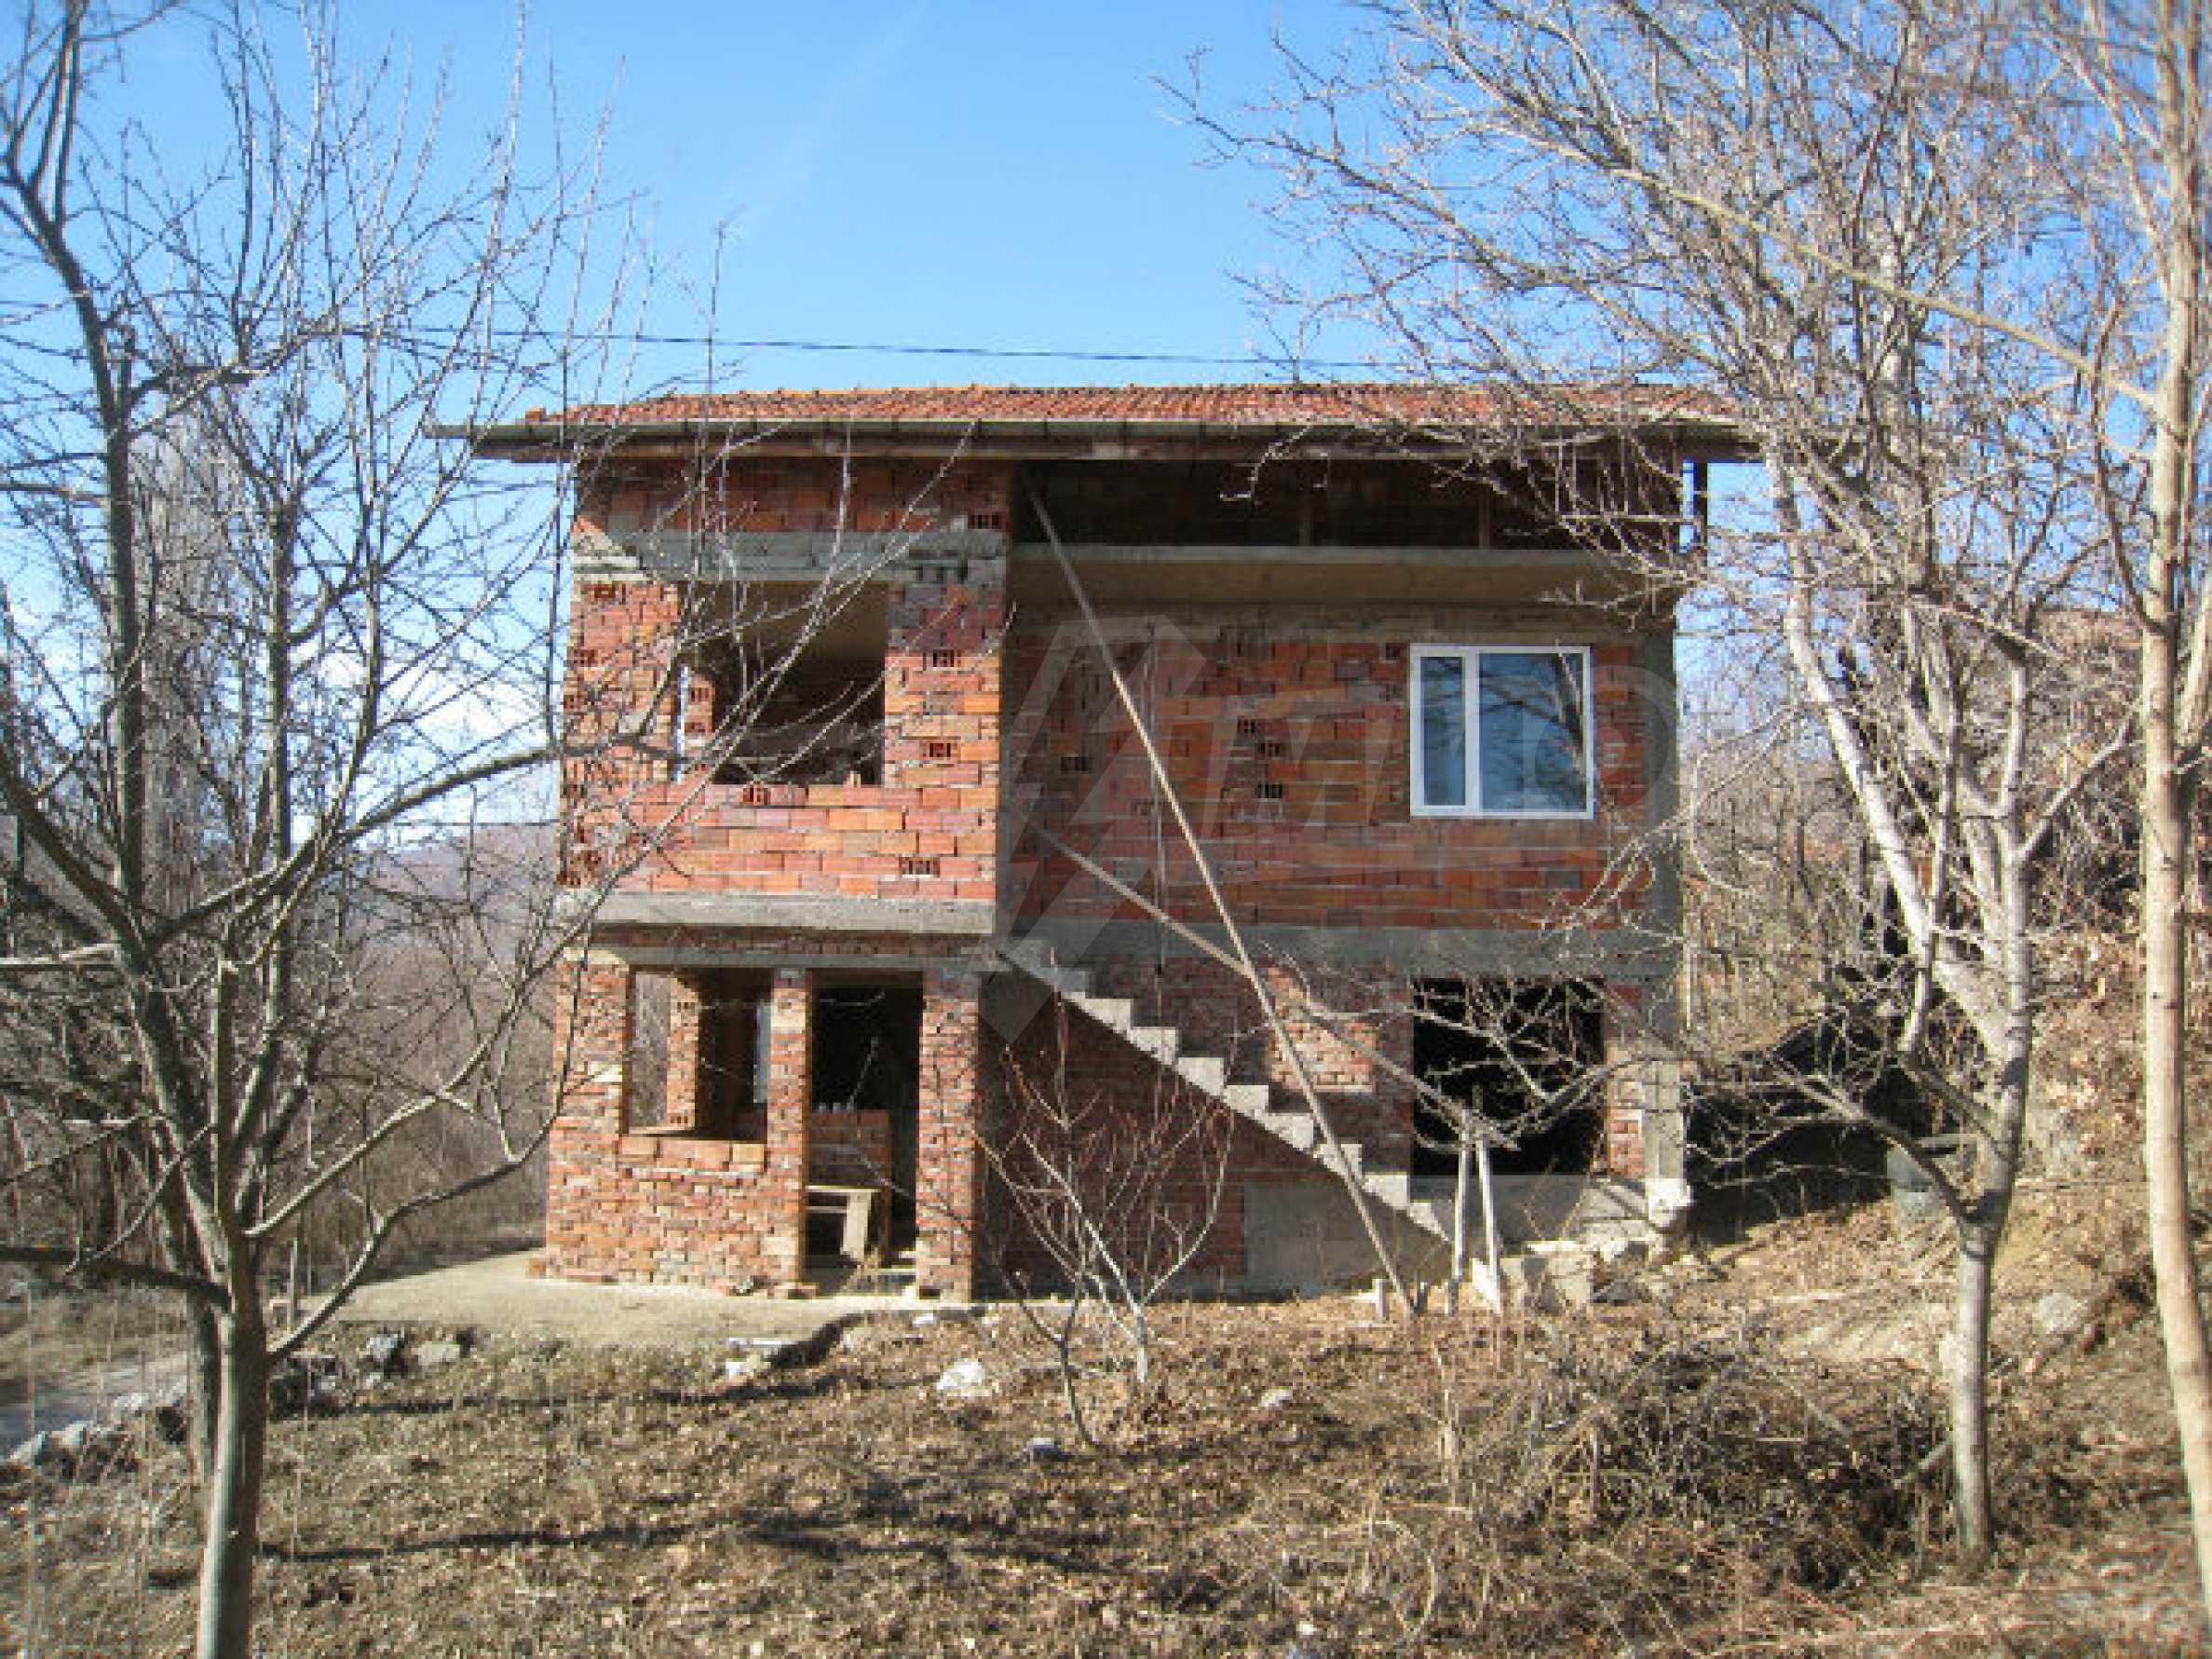 Old and new houses with yard in village 21 km from Kyustendil 53